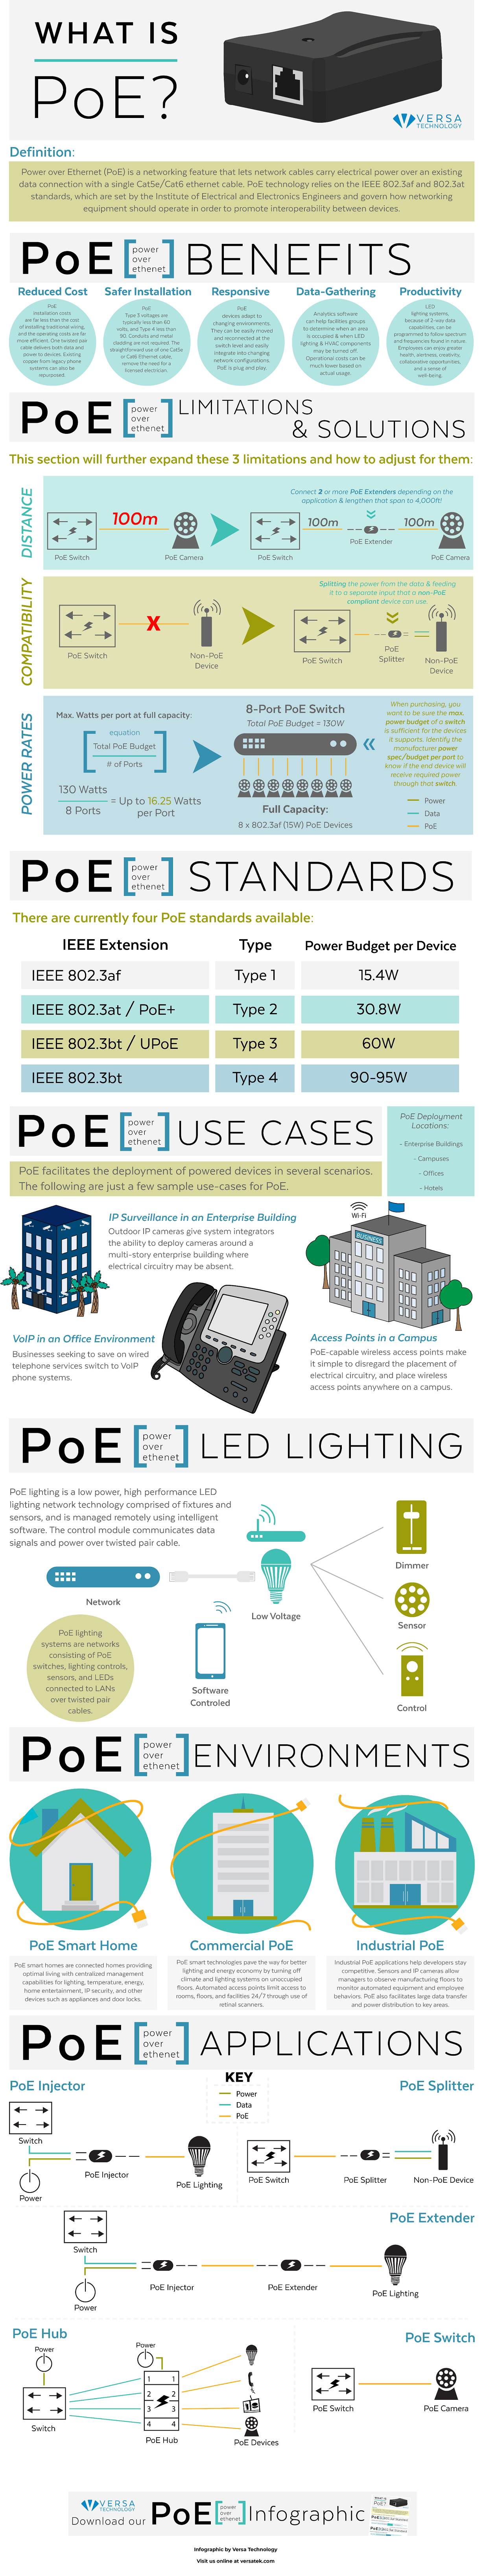 What does Ethernet Power mean? #infographic